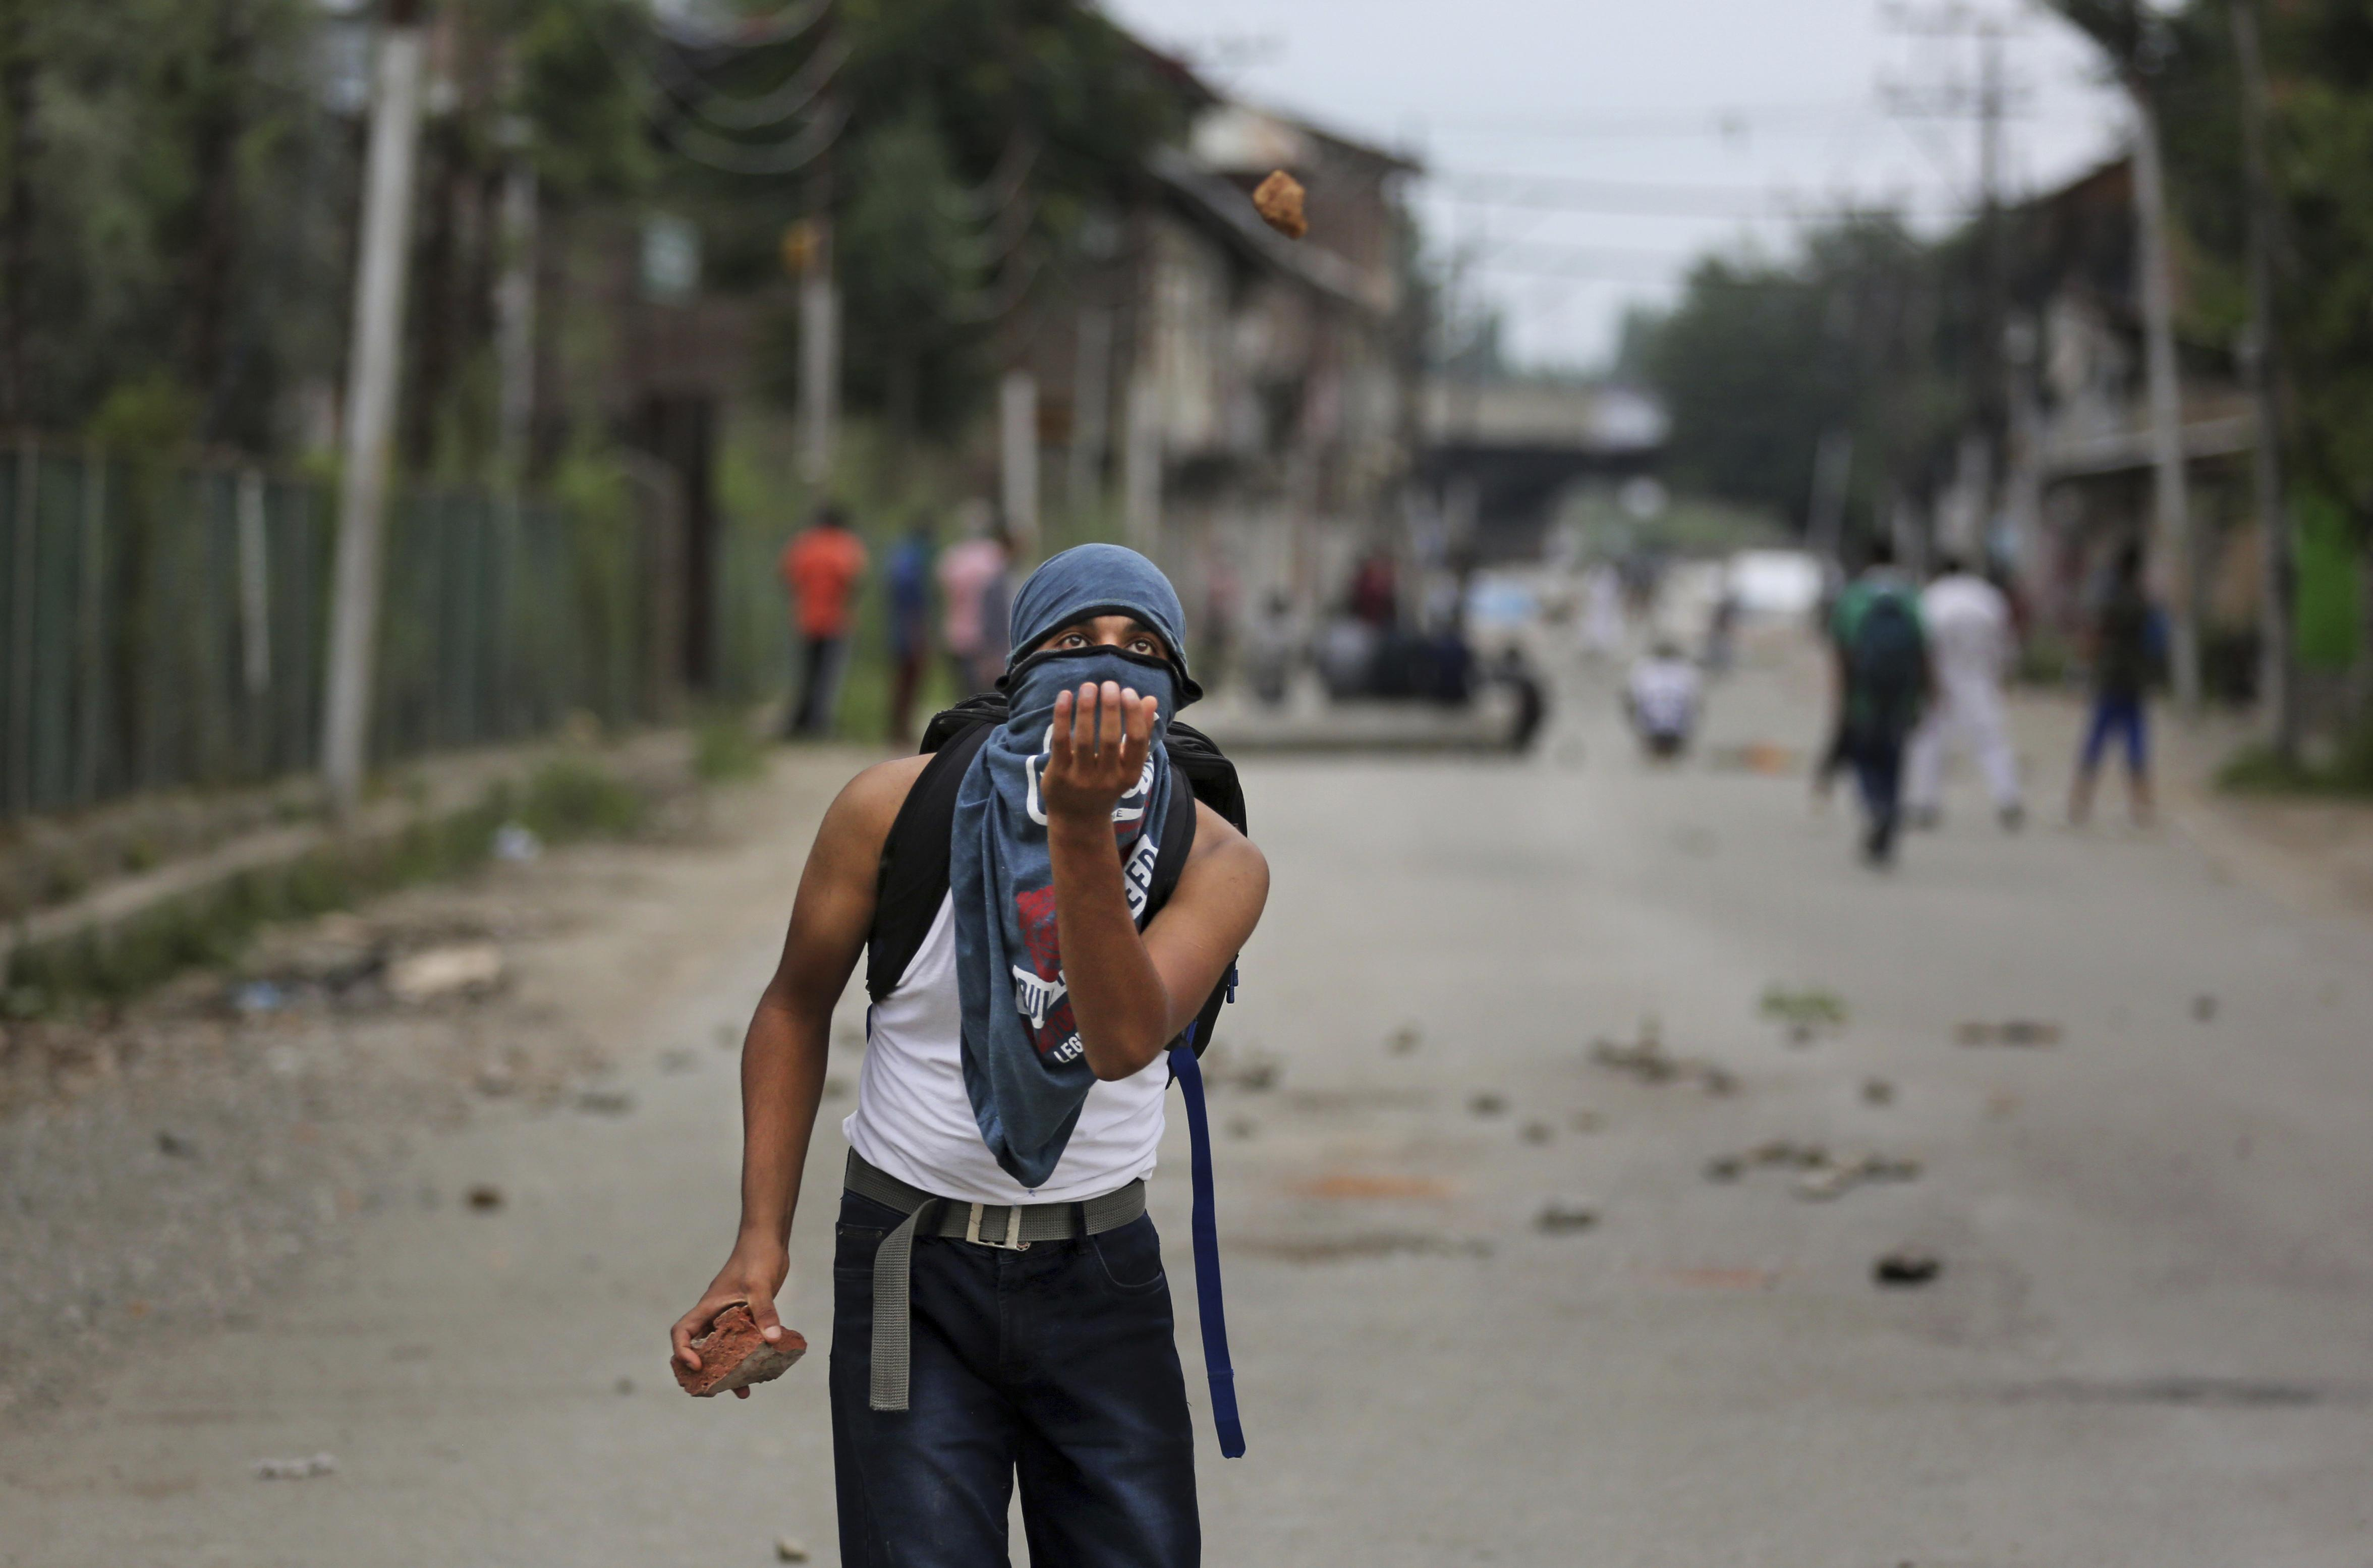 Kashmir curfew partially eased for prayers amid lockdown | The